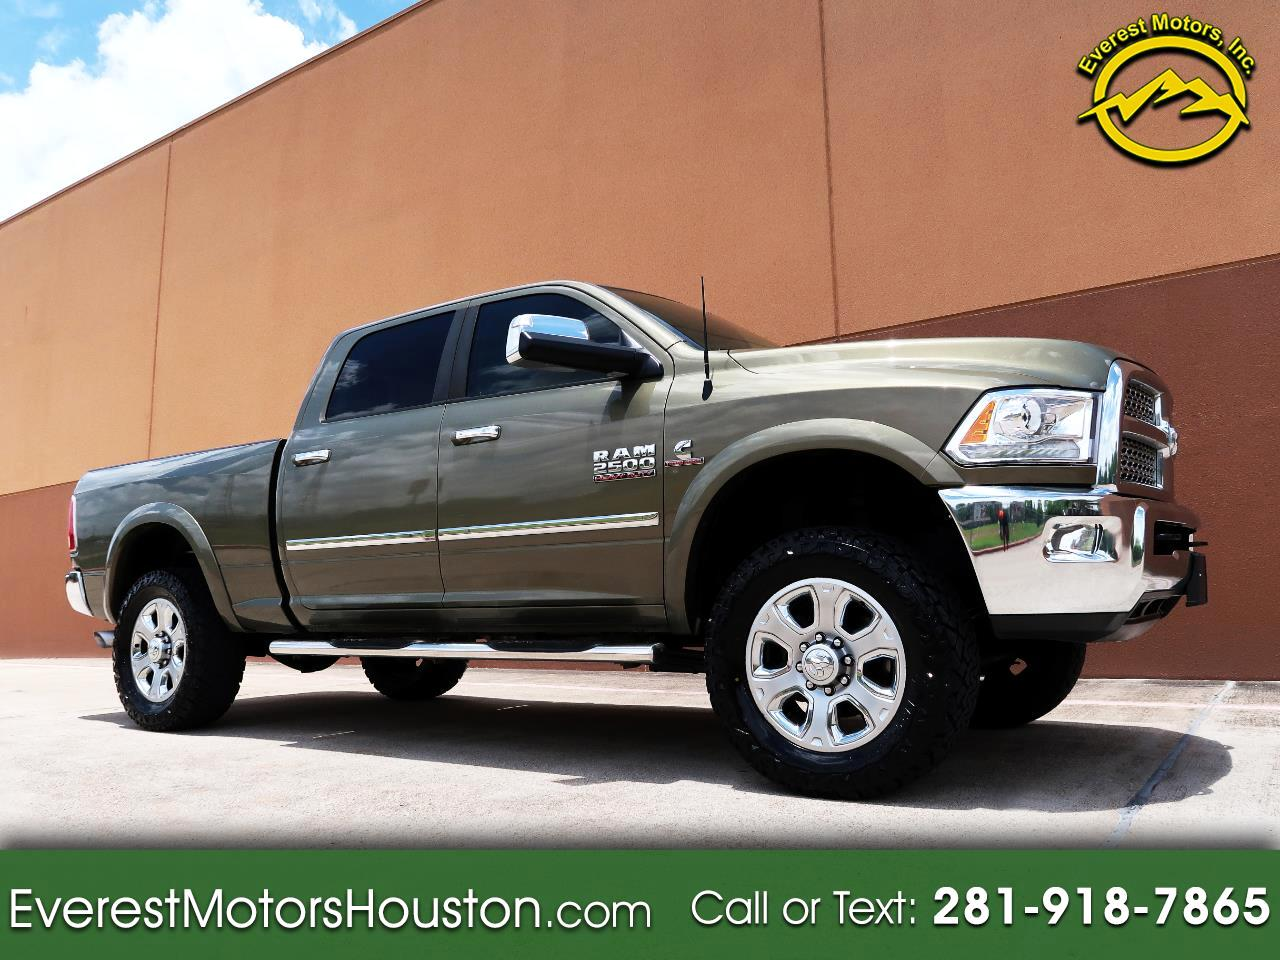 Buy Here Pay Here Cars for Sale Houston TX 77063 Everest